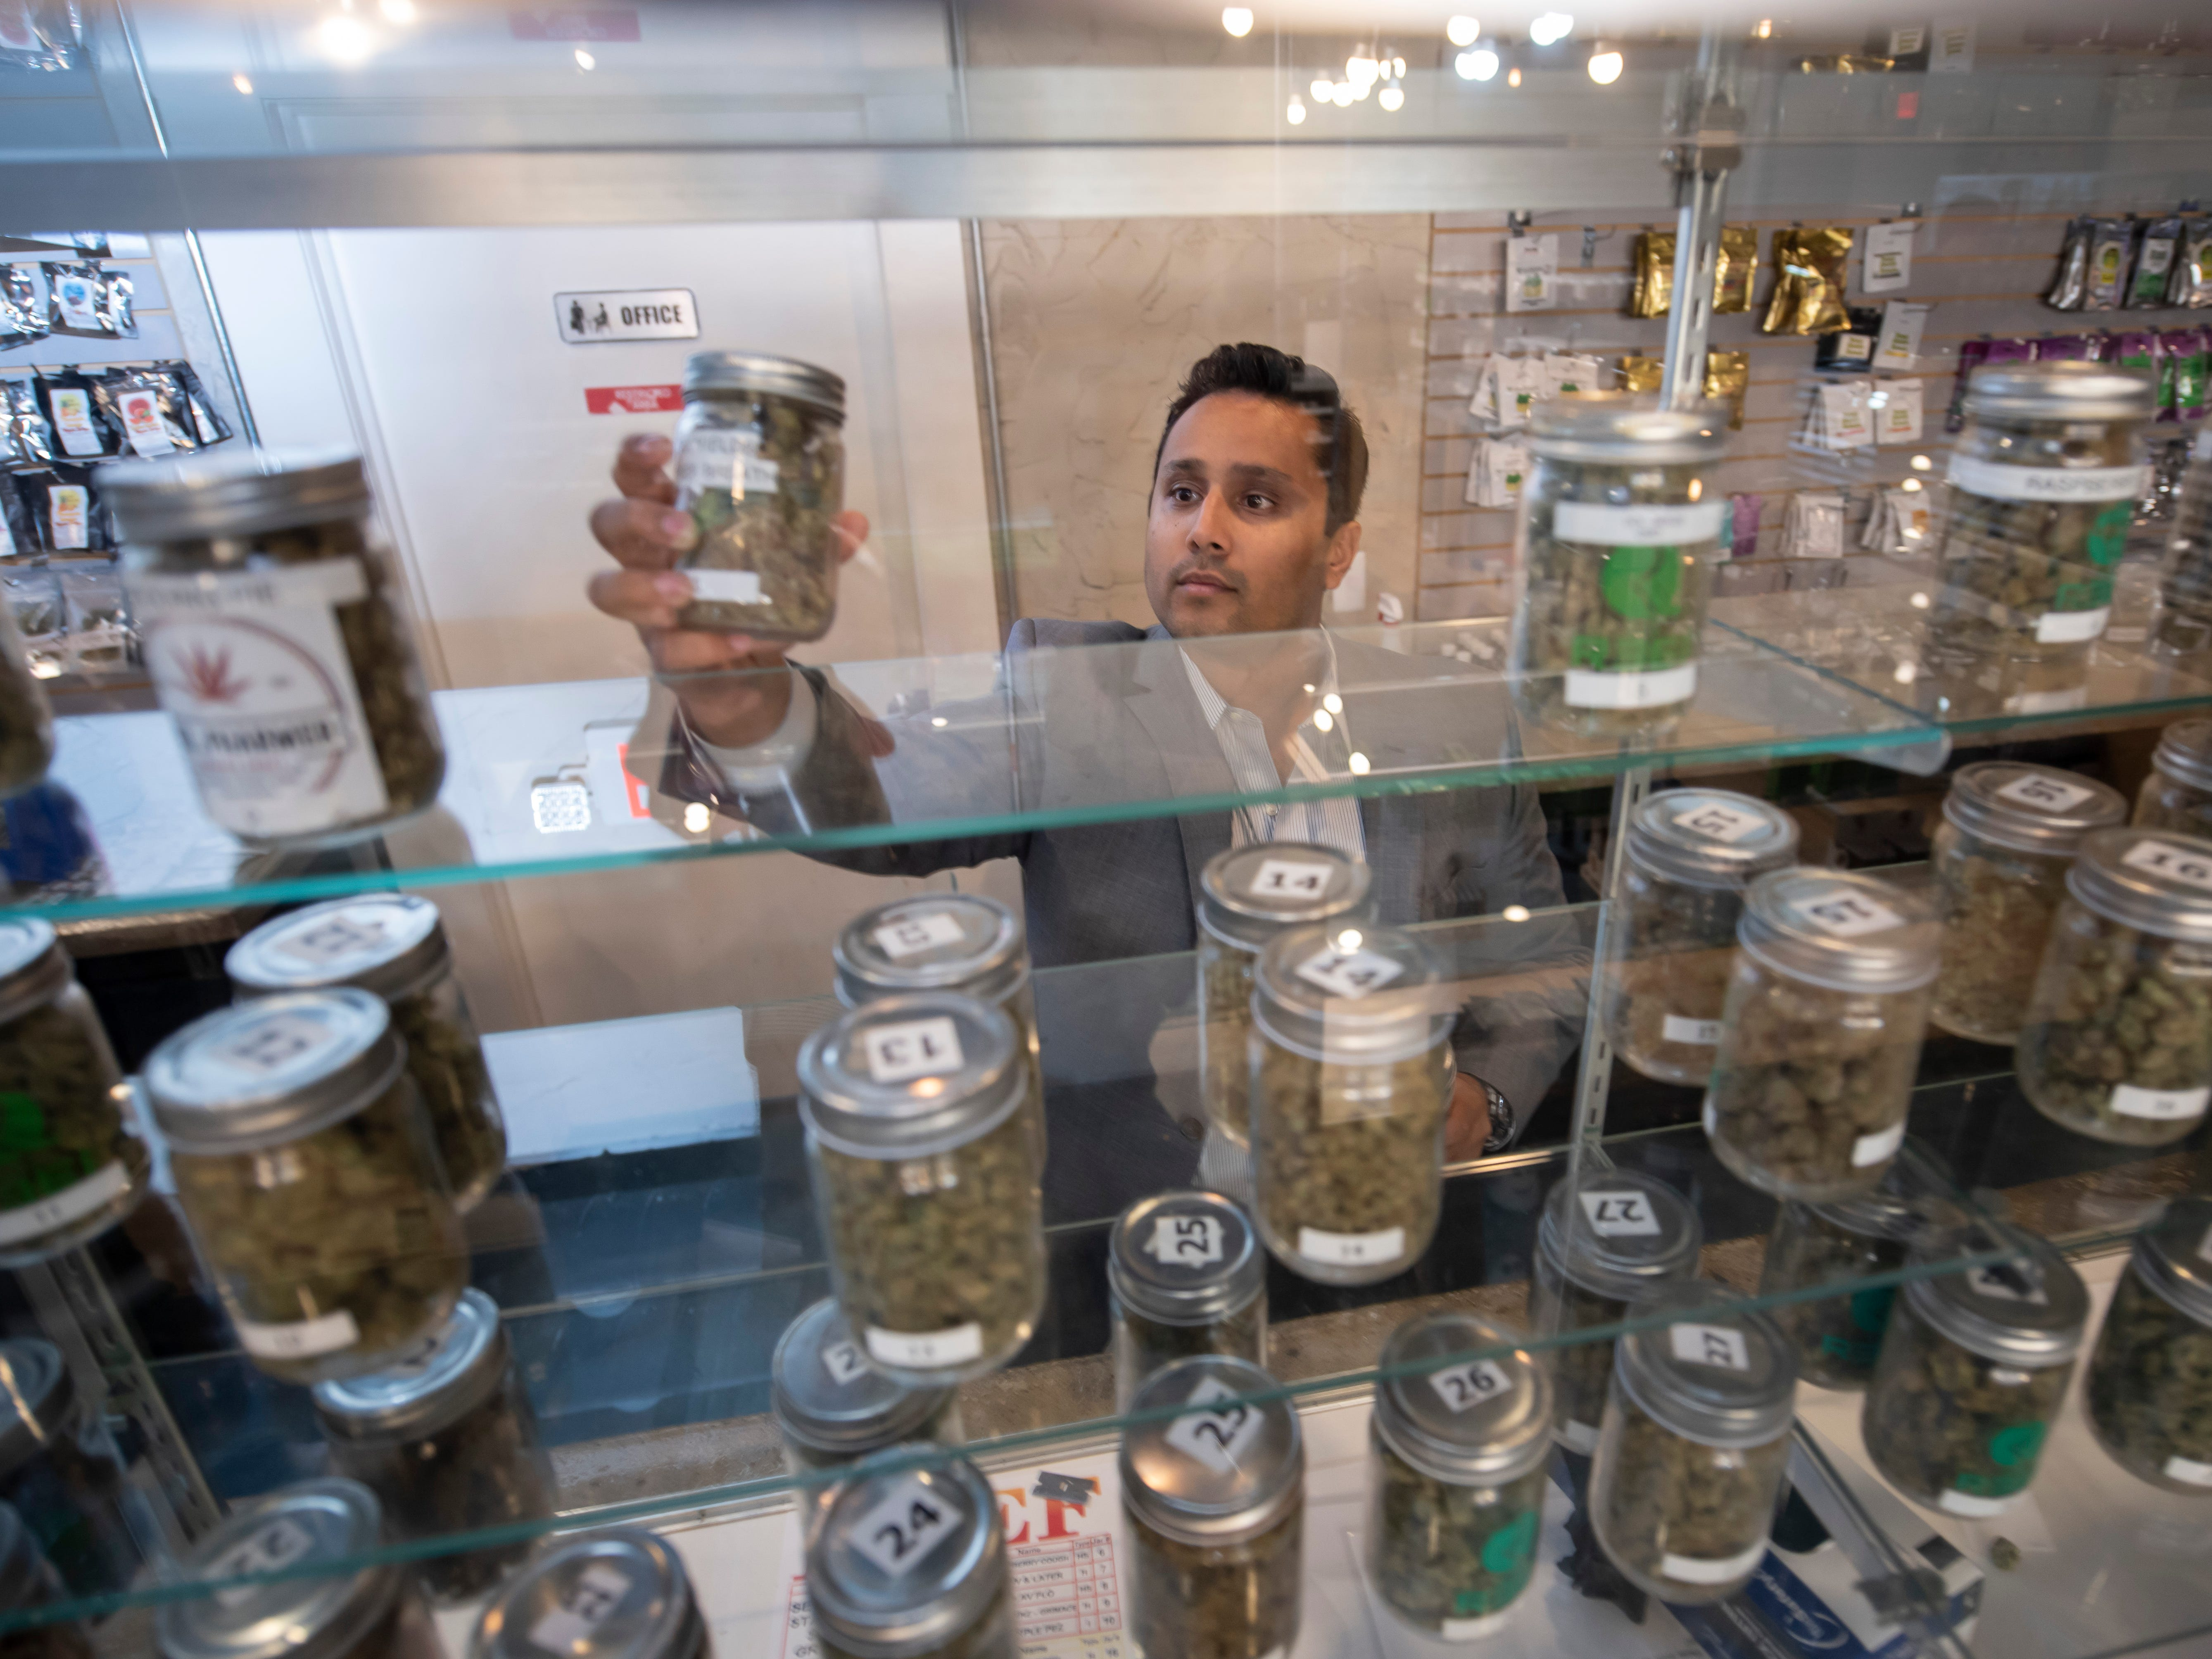 Rush Hasan, operations and business development for The Reef marijuana dispensary, pulls down a jar of product at the Eight Mile location in Detroit.